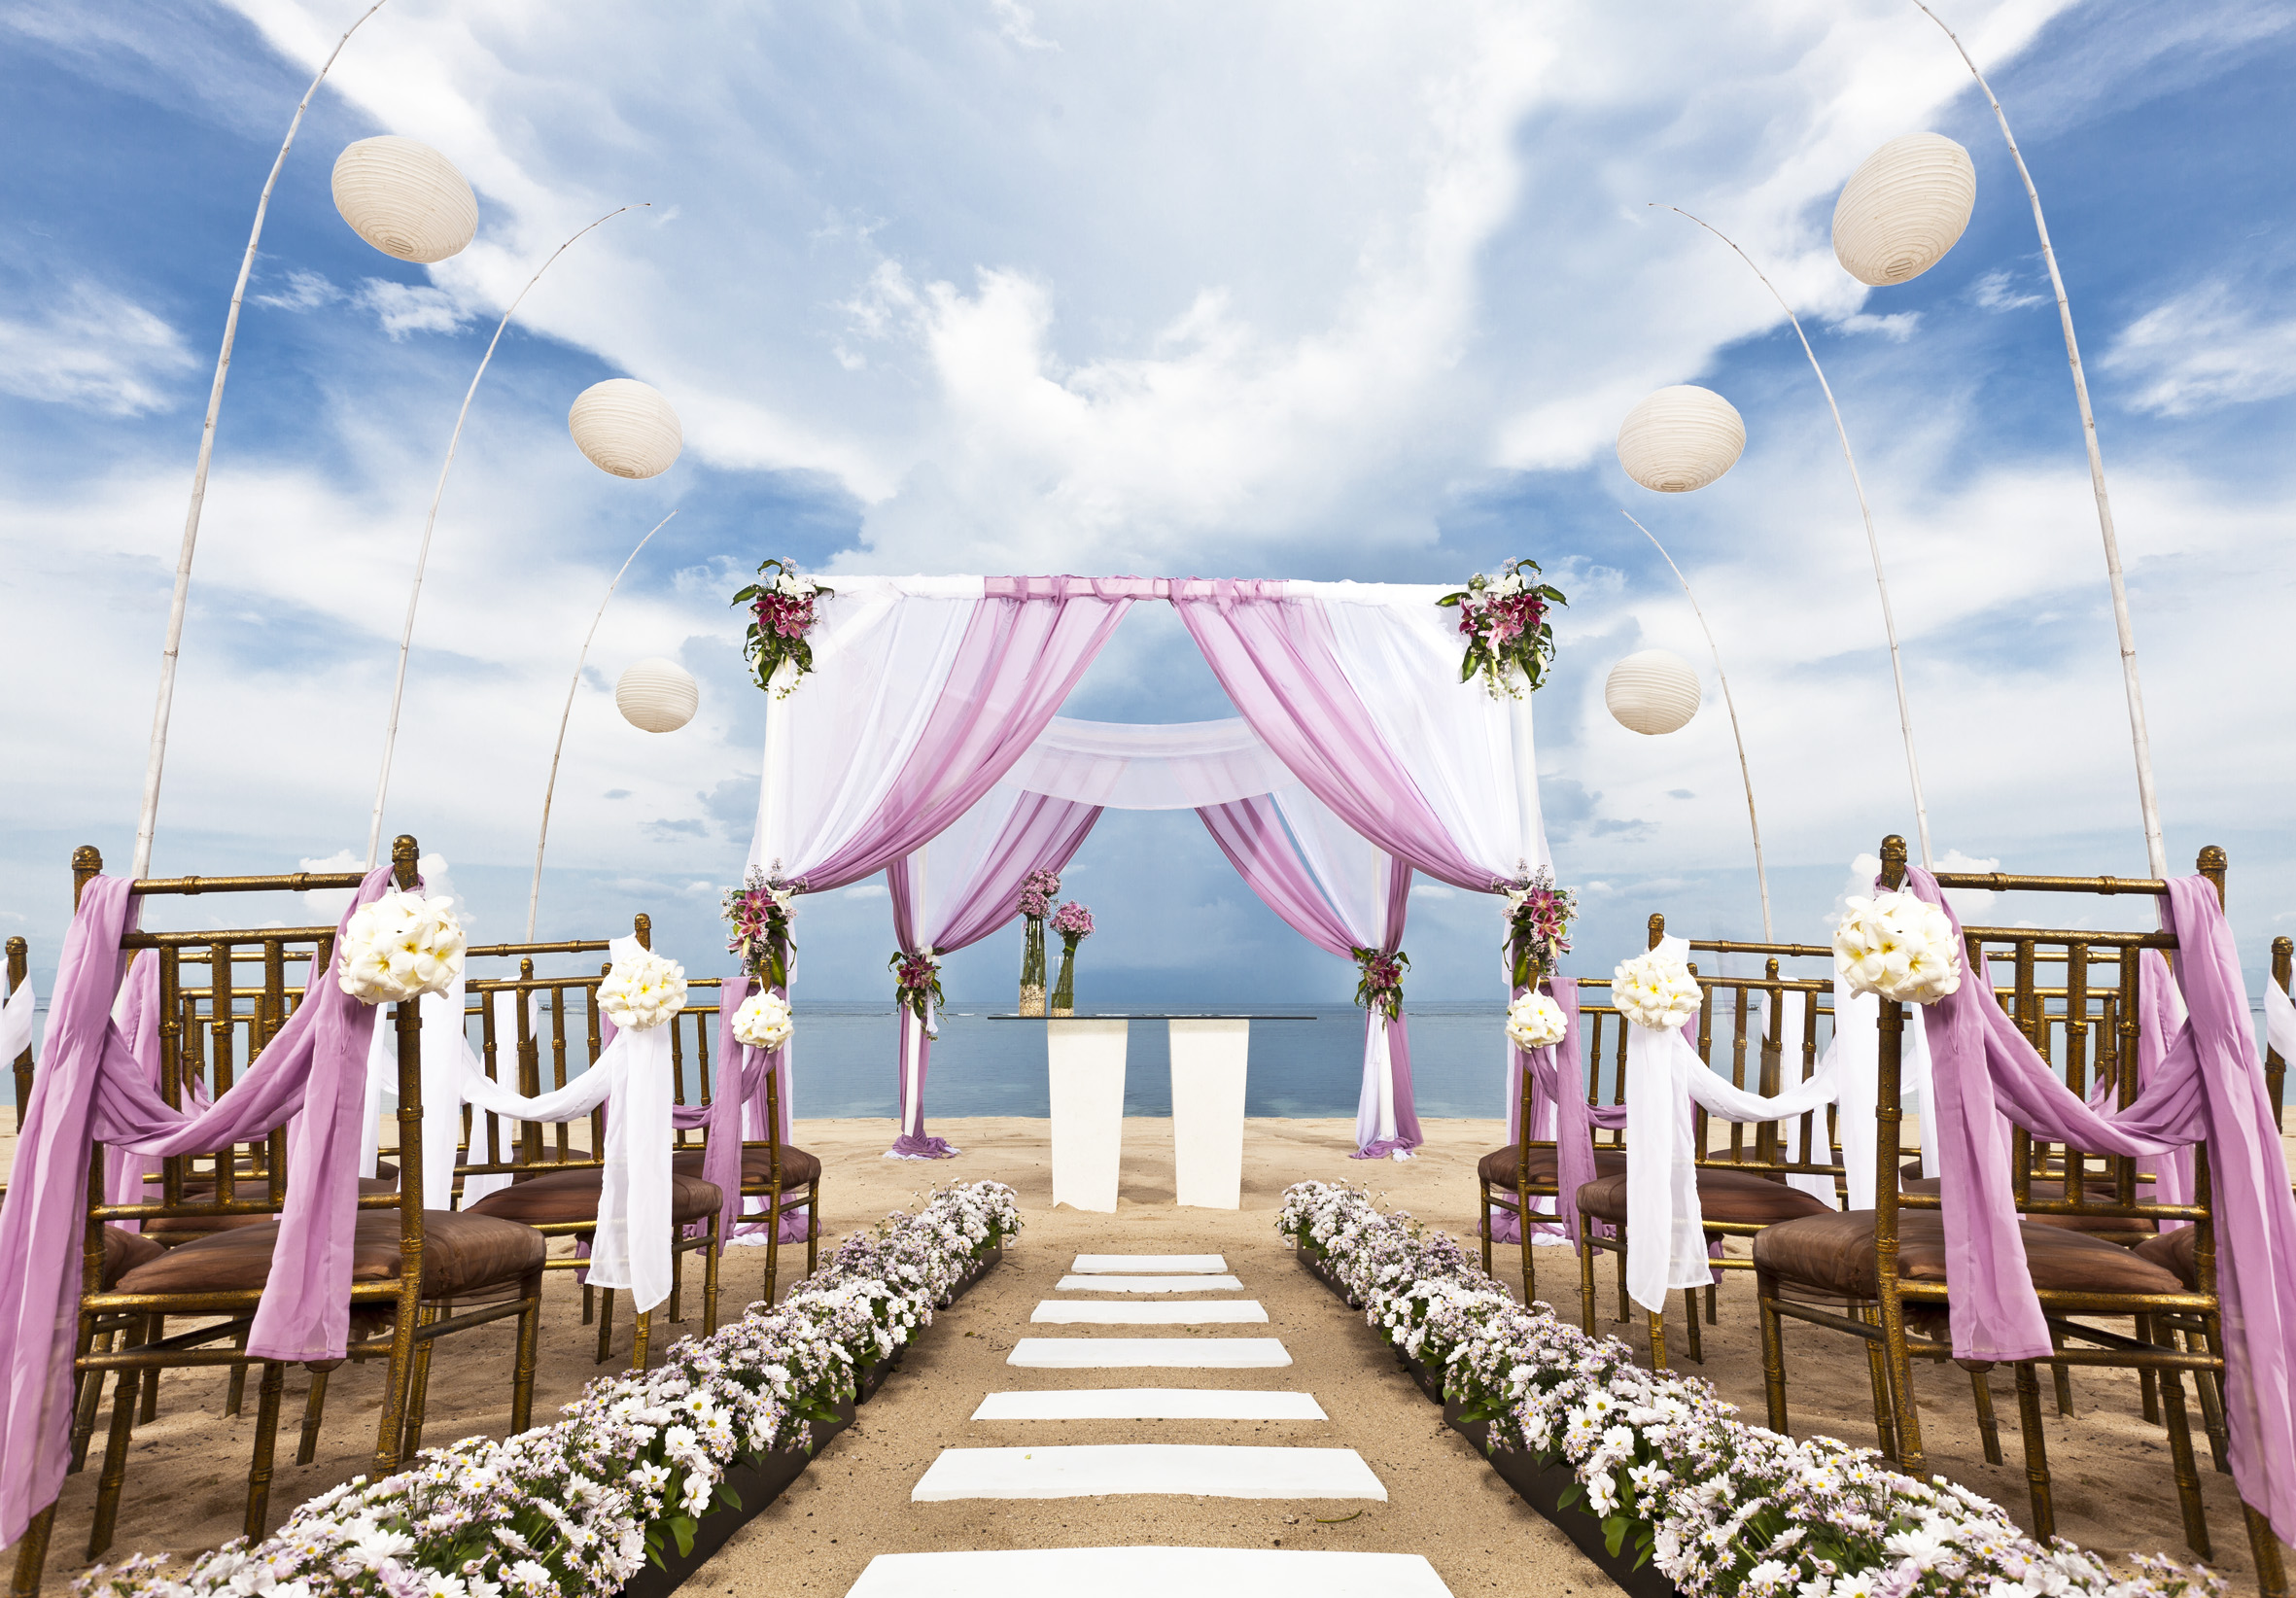 Summer is almost here! Time for Wedding Ideas